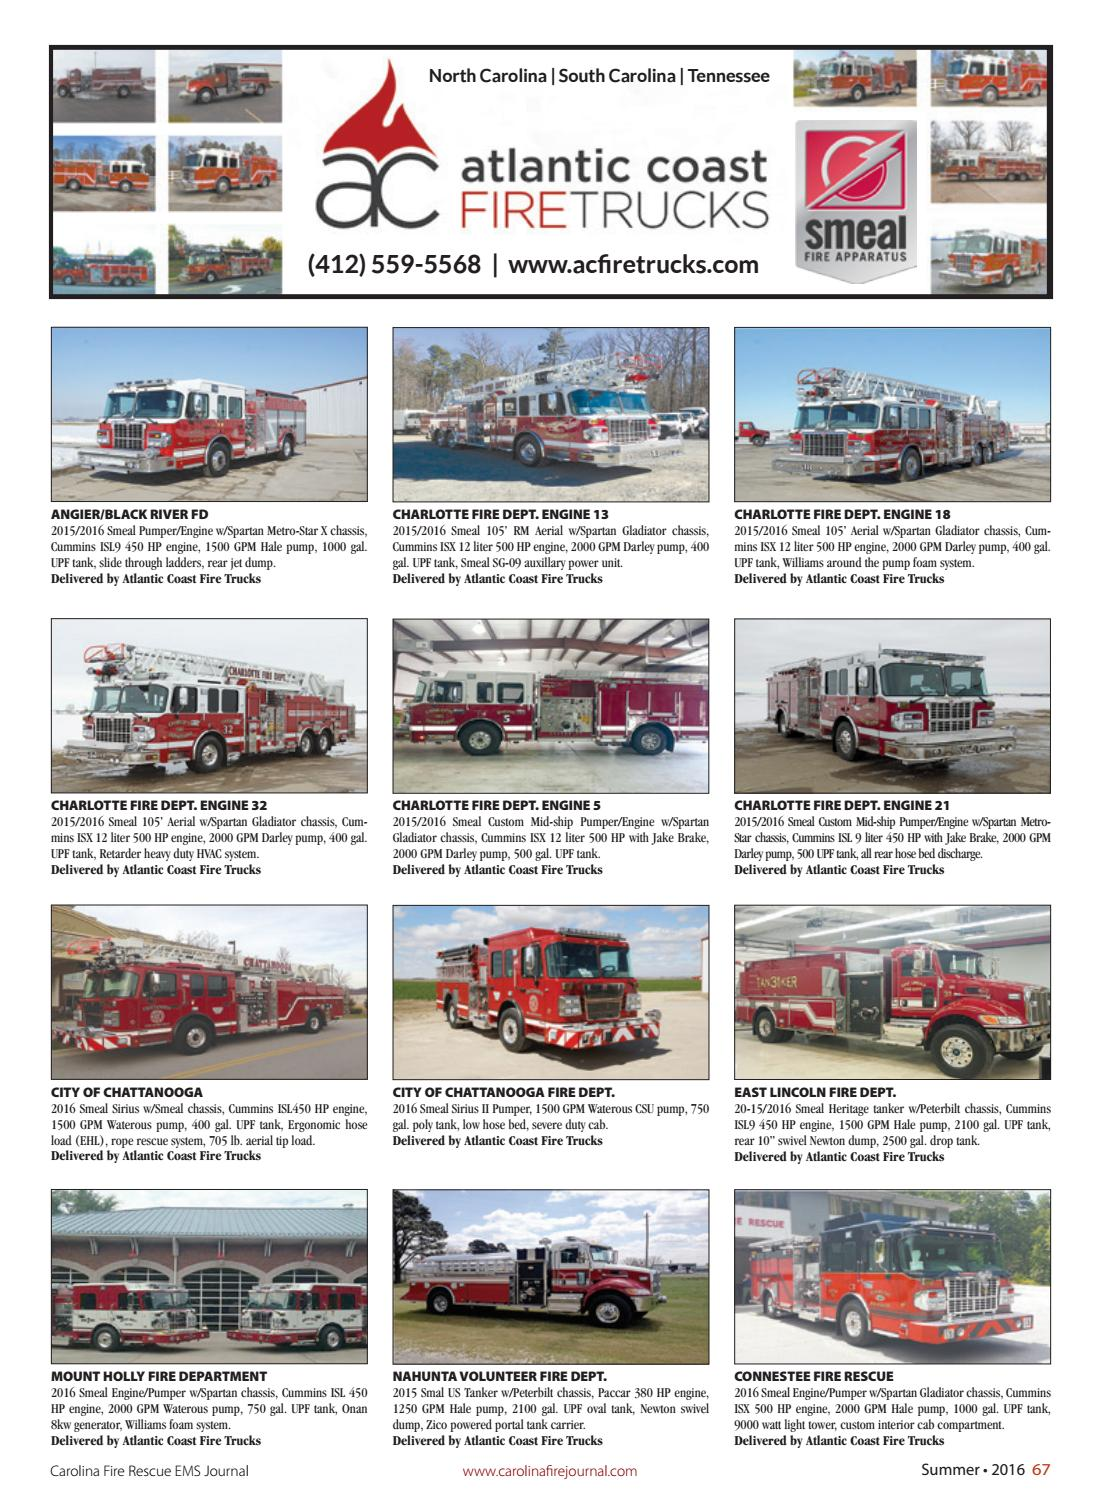 Carolina Fire Rescue EMS Journal by Moore Creative - issuu